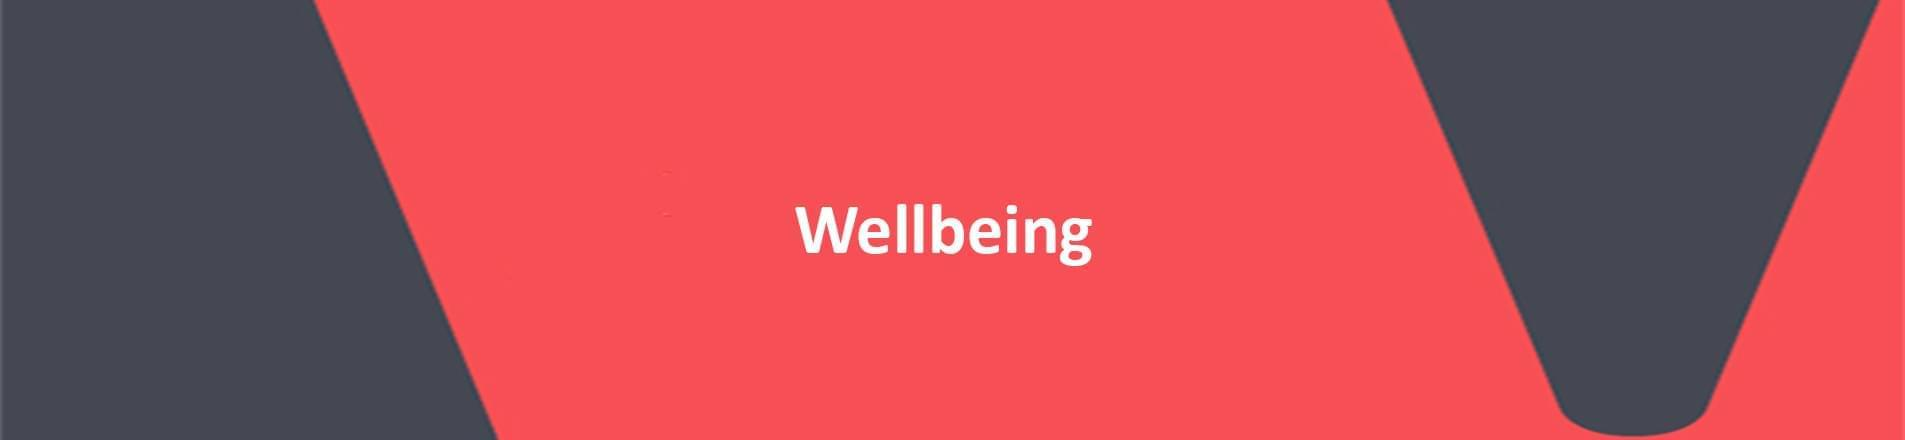 """Text """"Wellbeing"""" on Vercida branded image"""